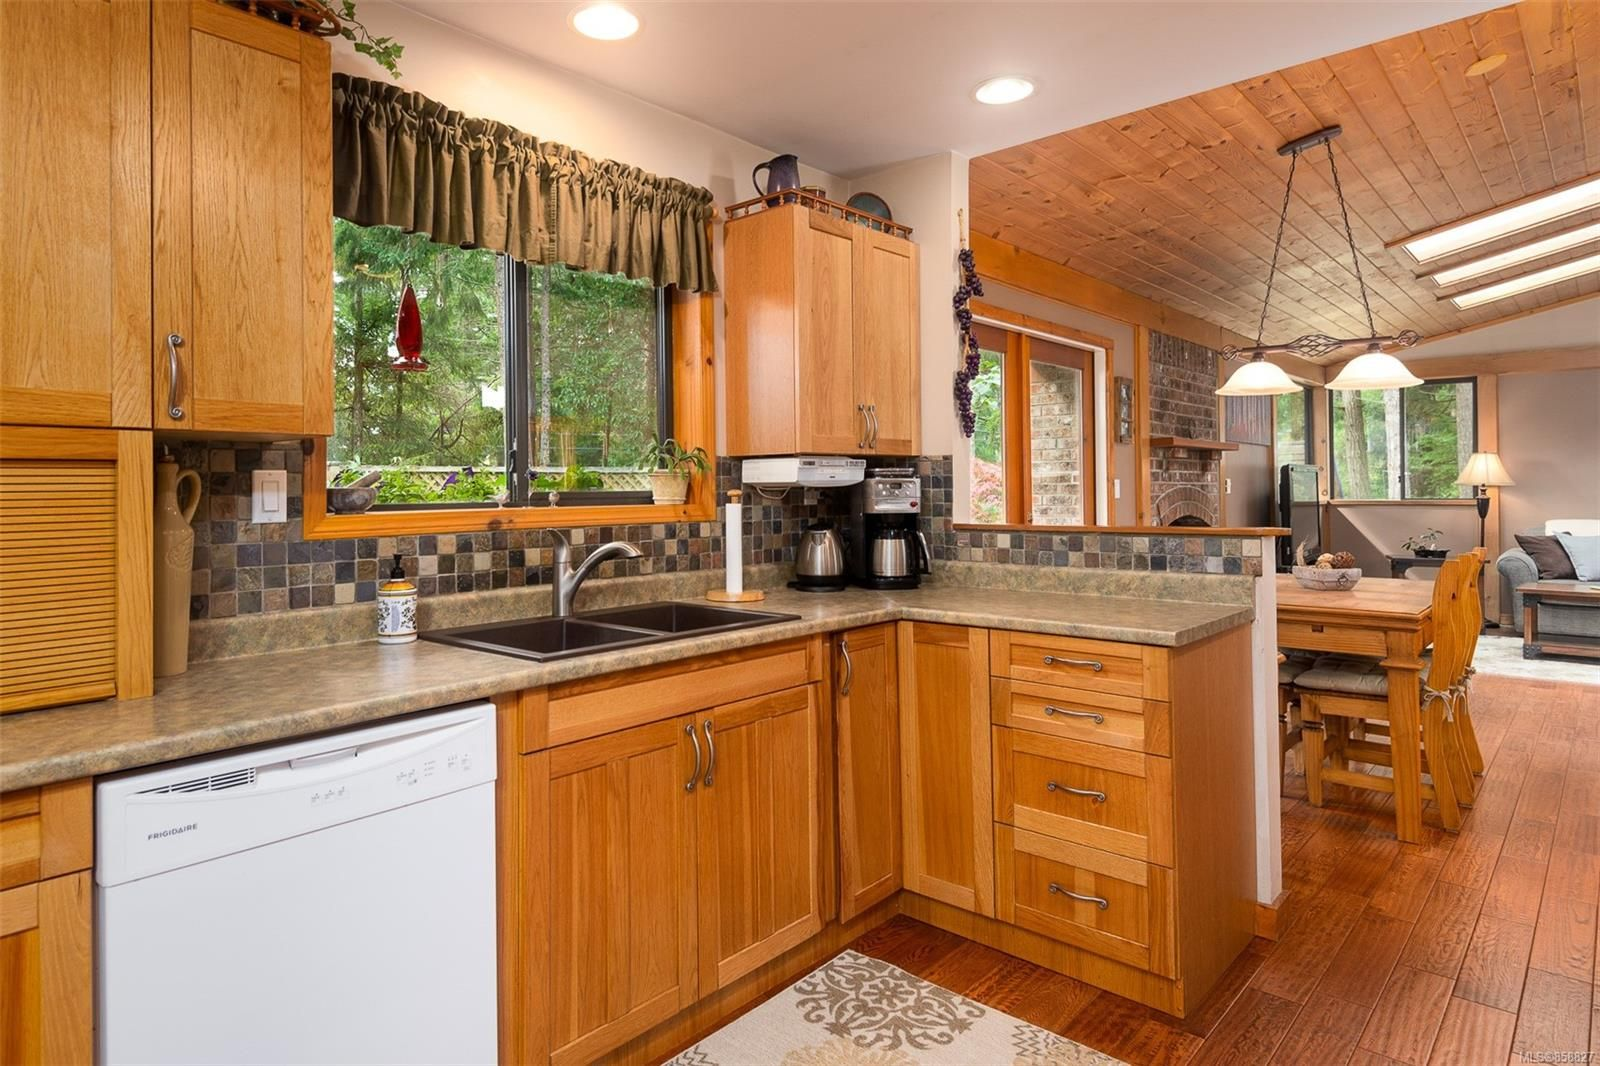 Photo 8: Photos: 1137 North End Rd in : GI Salt Spring House for sale (Gulf Islands)  : MLS®# 858827